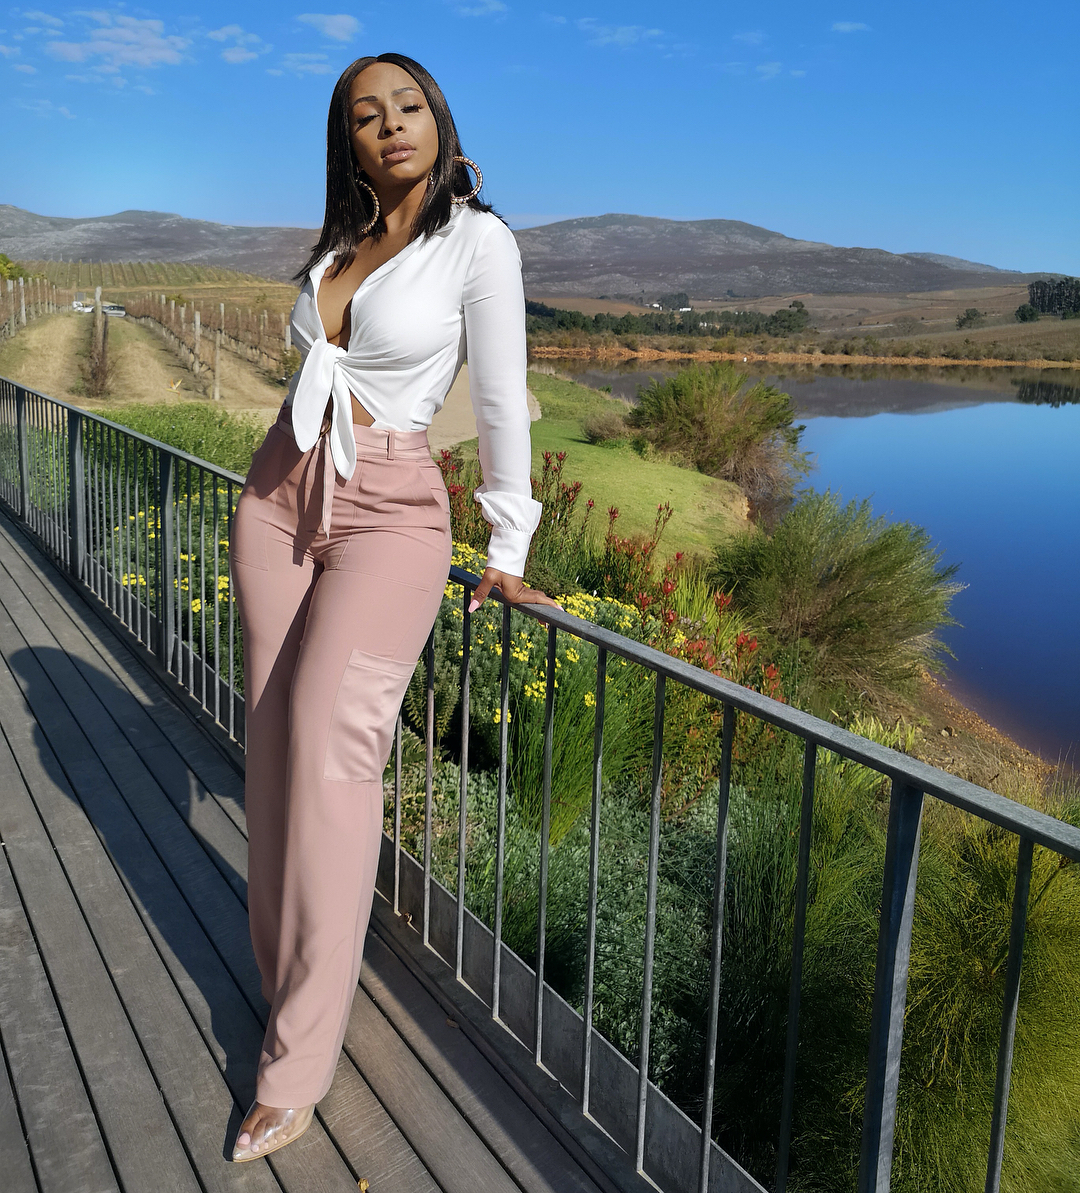 Sneak Peek: Here's Your First Look At Boity's New Collection With Sissy Boy #BXSB